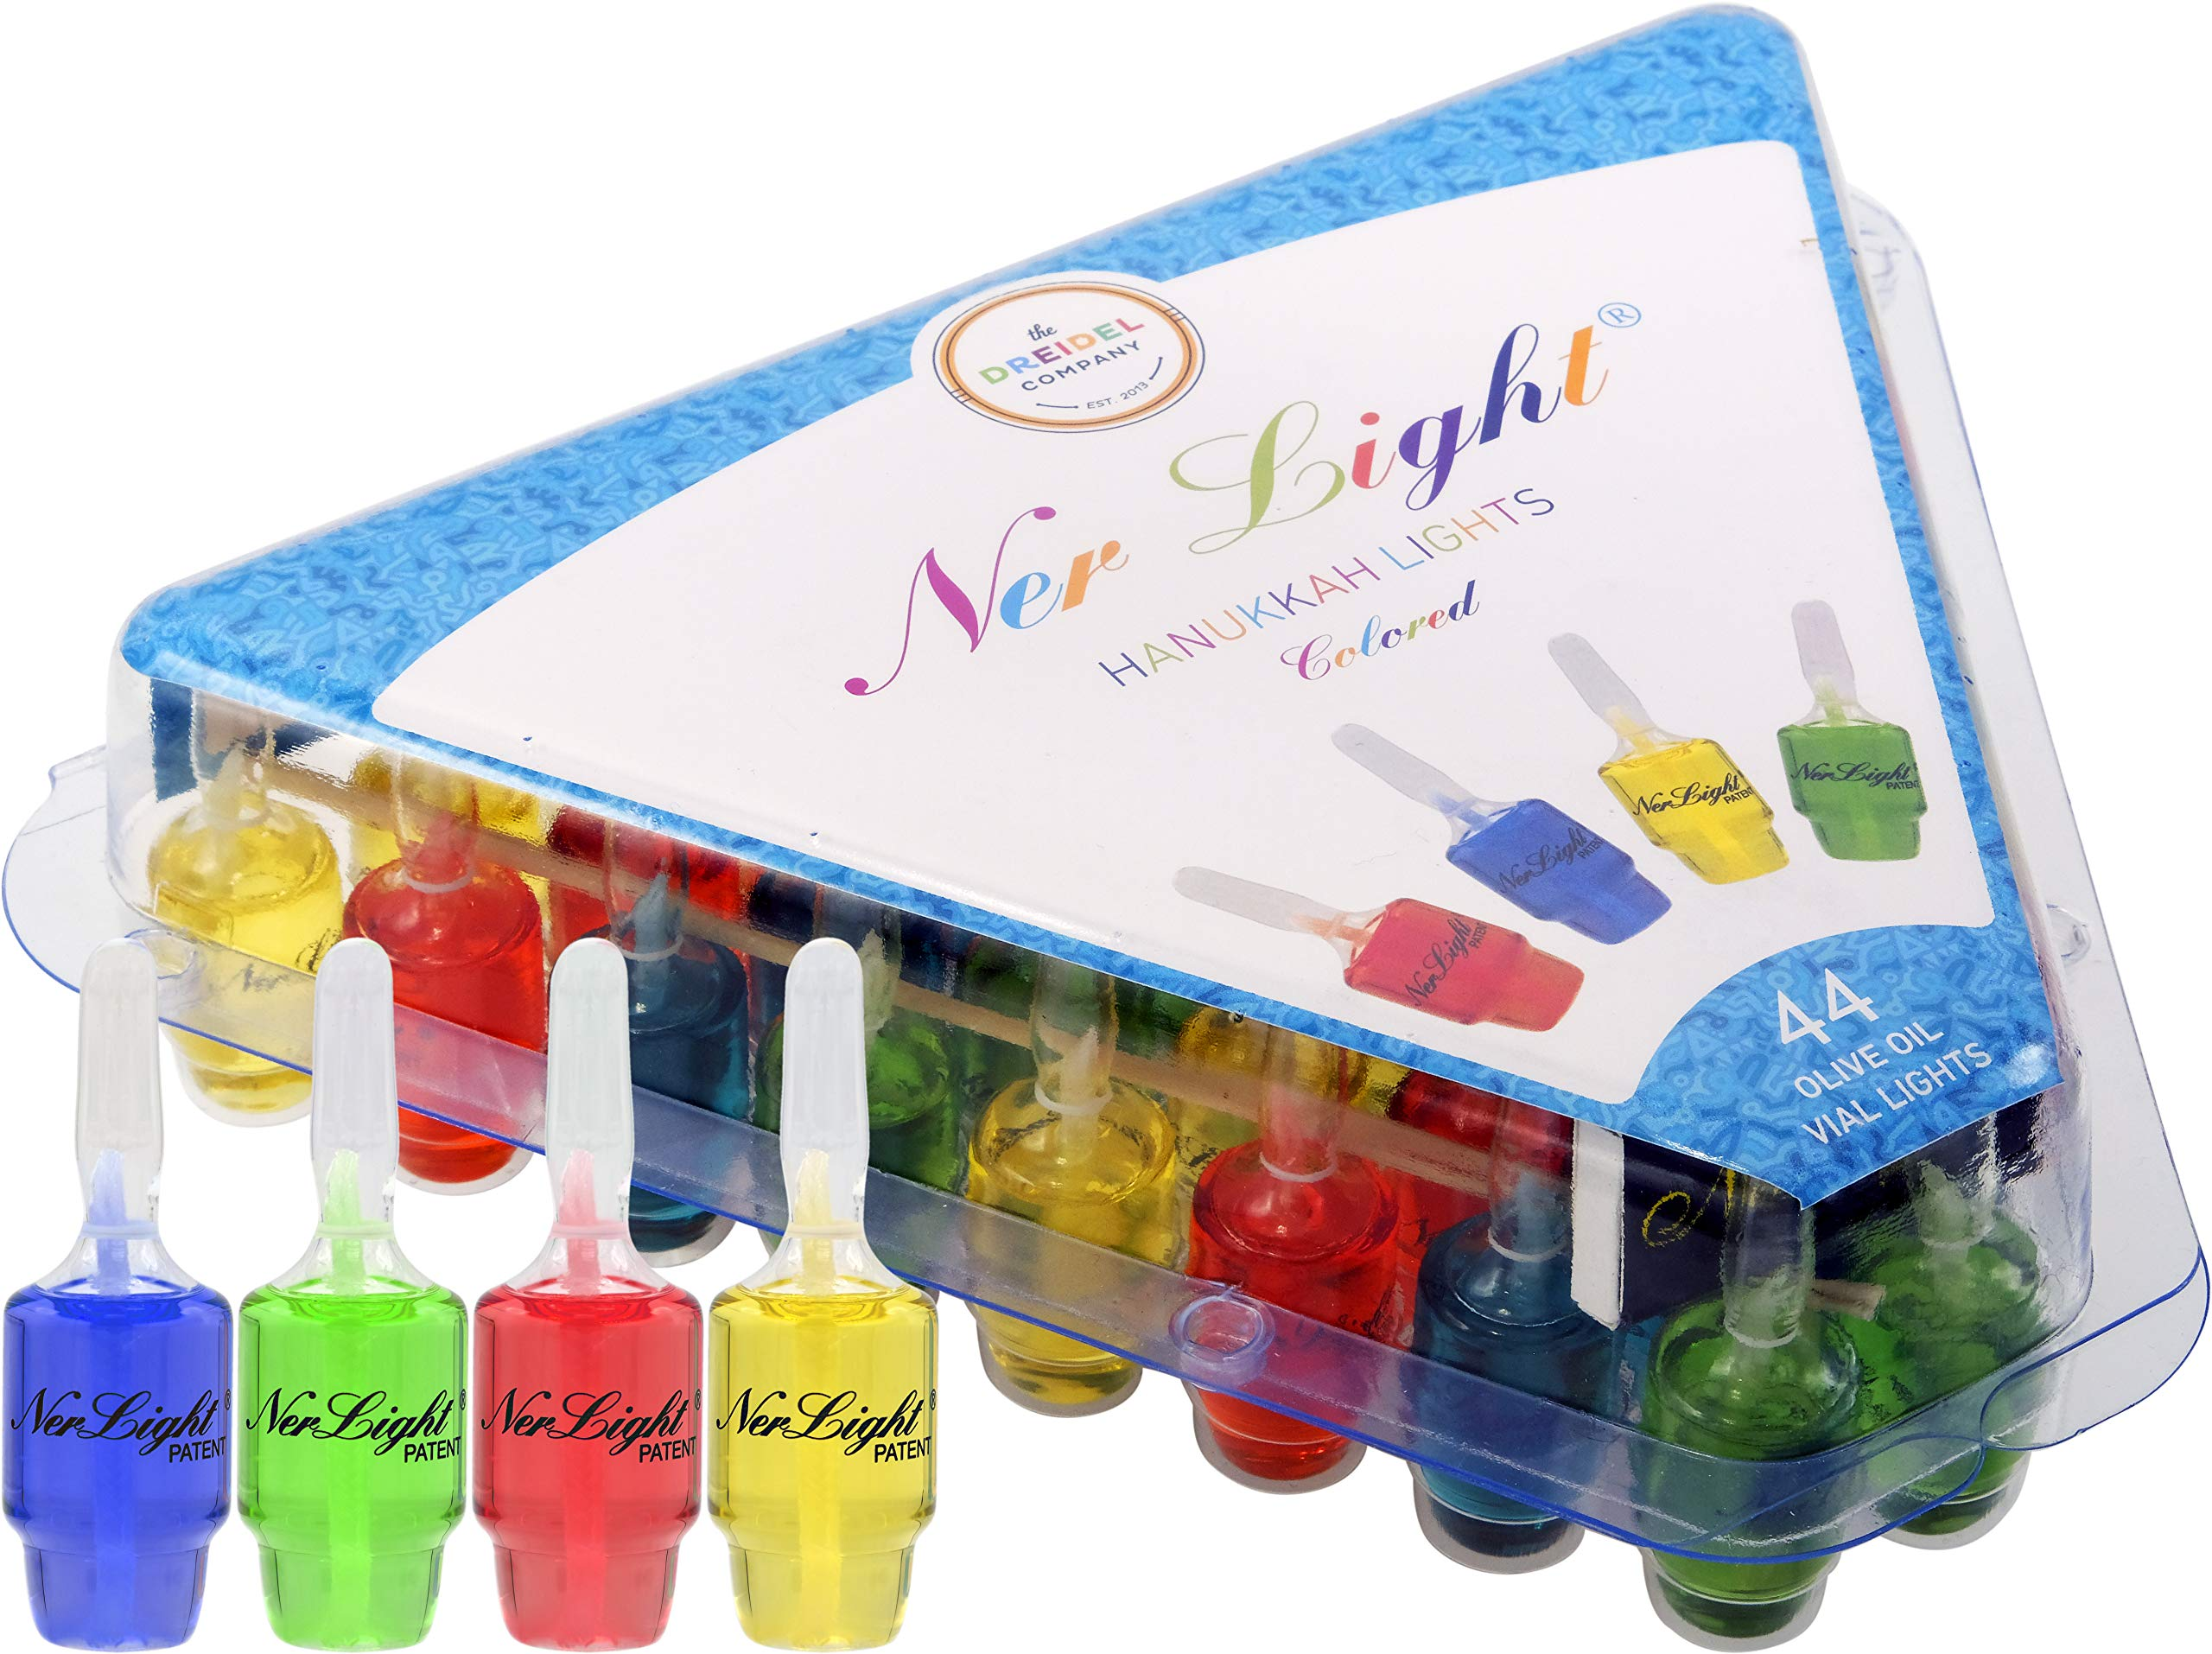 Pre-Filled Oil Hanukkah Menorah Oil Glass Cup Candles Ner Light Chanukah Oil Cups 44  Colored 100 Percent Olive Oil Cups